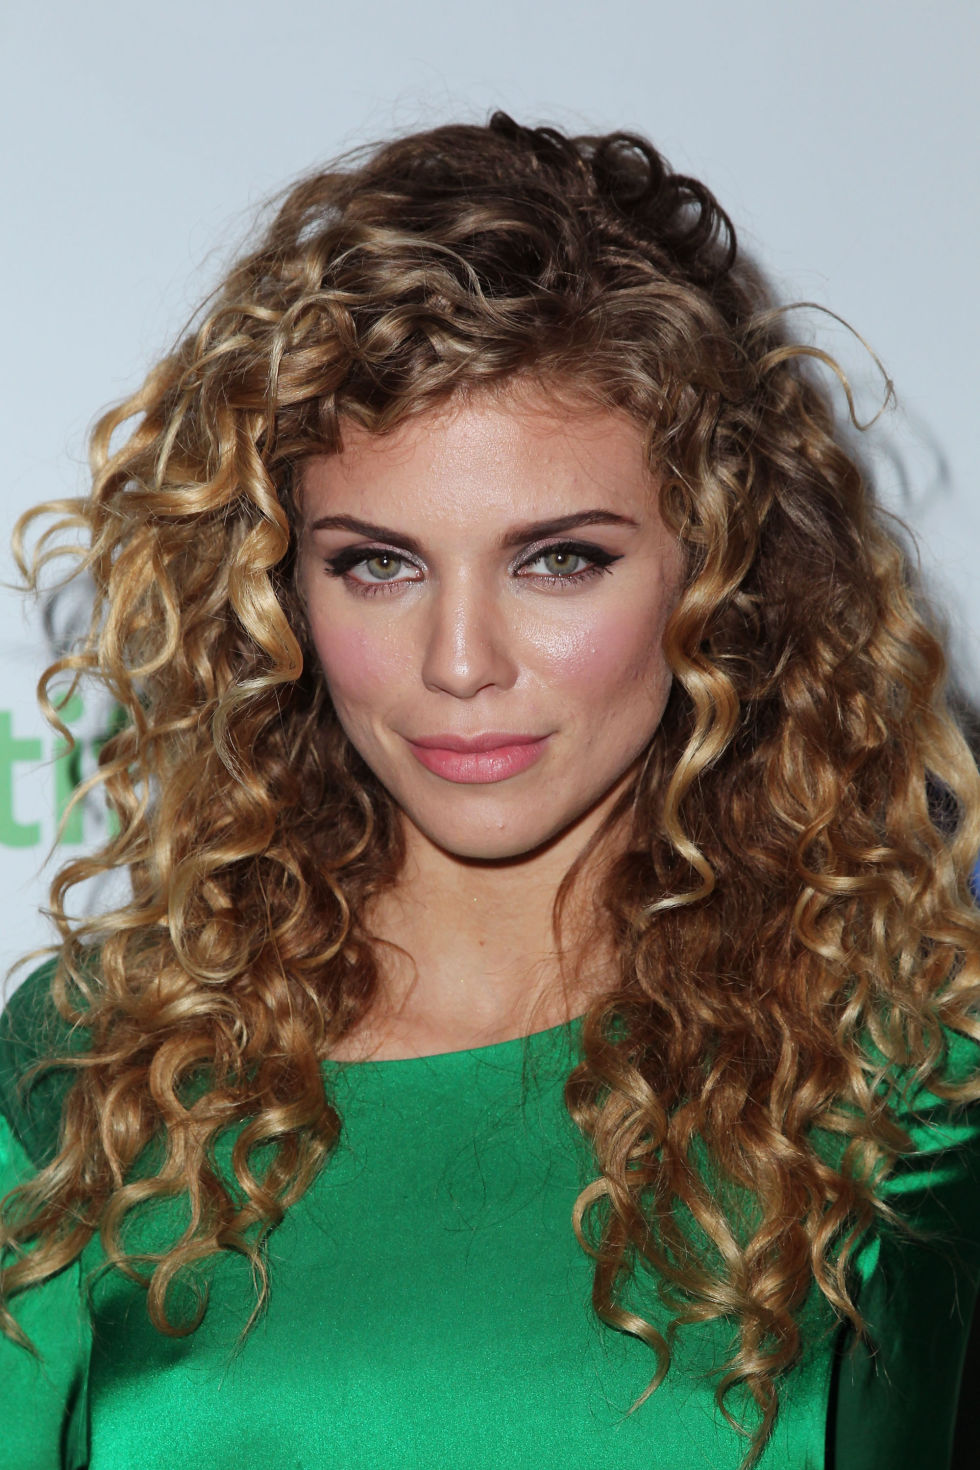 Strange 30 Best Curly Hairstyles Of 2017 Cute Hairstyles For Curly Hair Short Hairstyles For Black Women Fulllsitofus